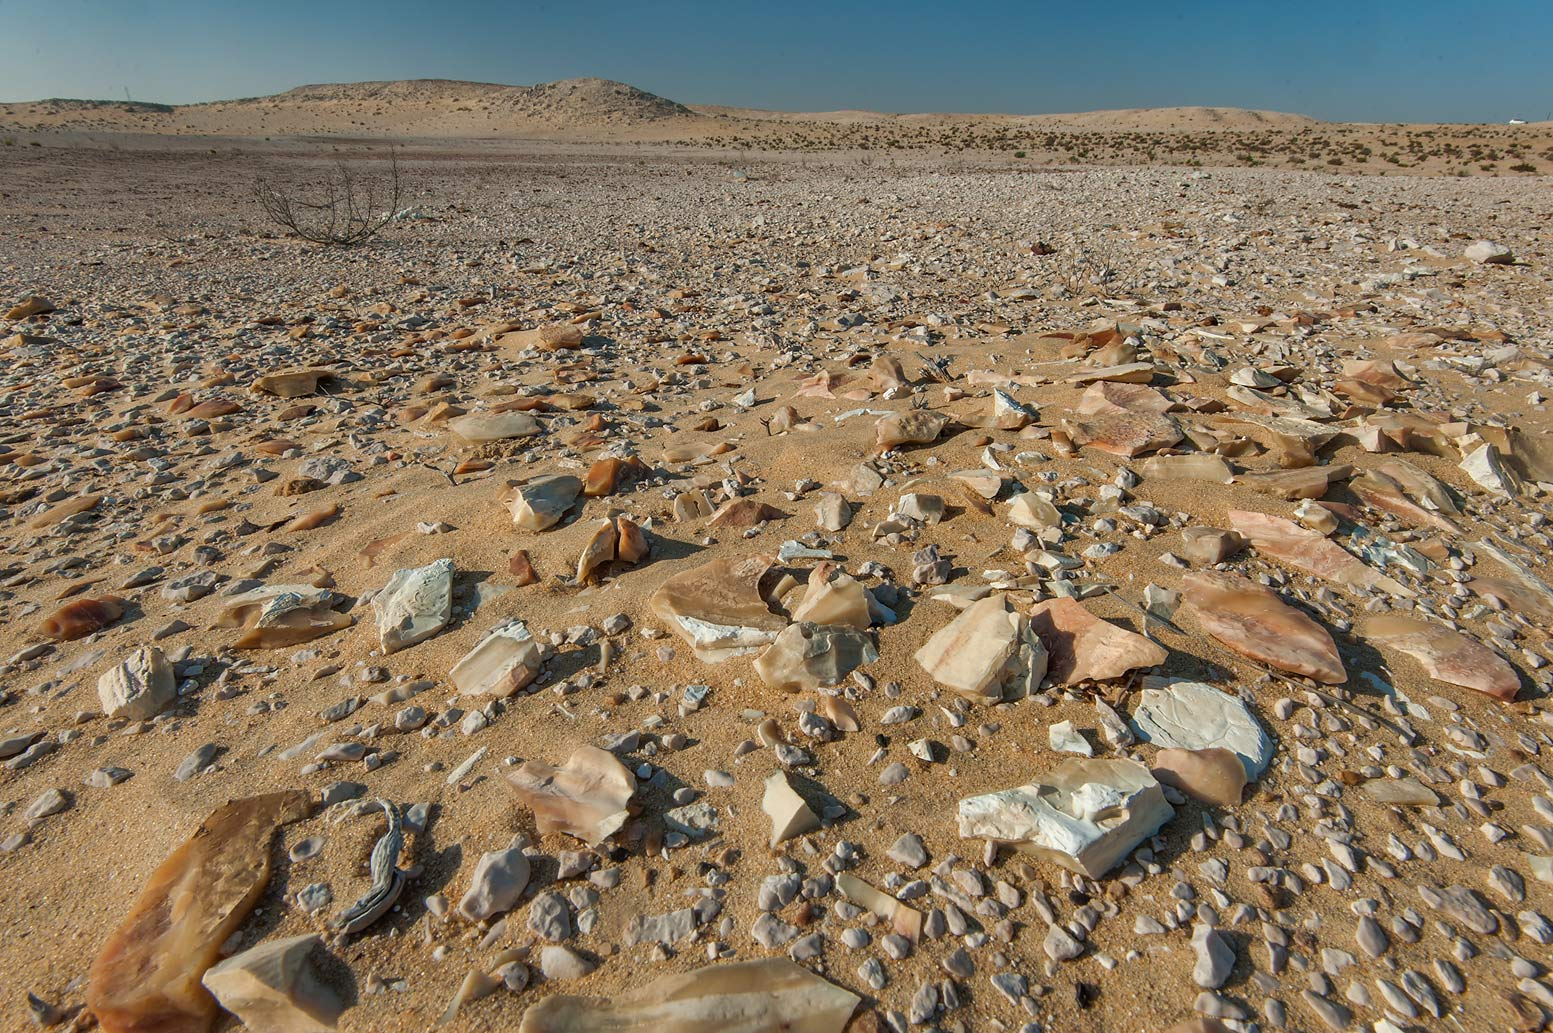 Flint stones in a desert on roadside of a road to Sawda Natheel. Southern Qatar